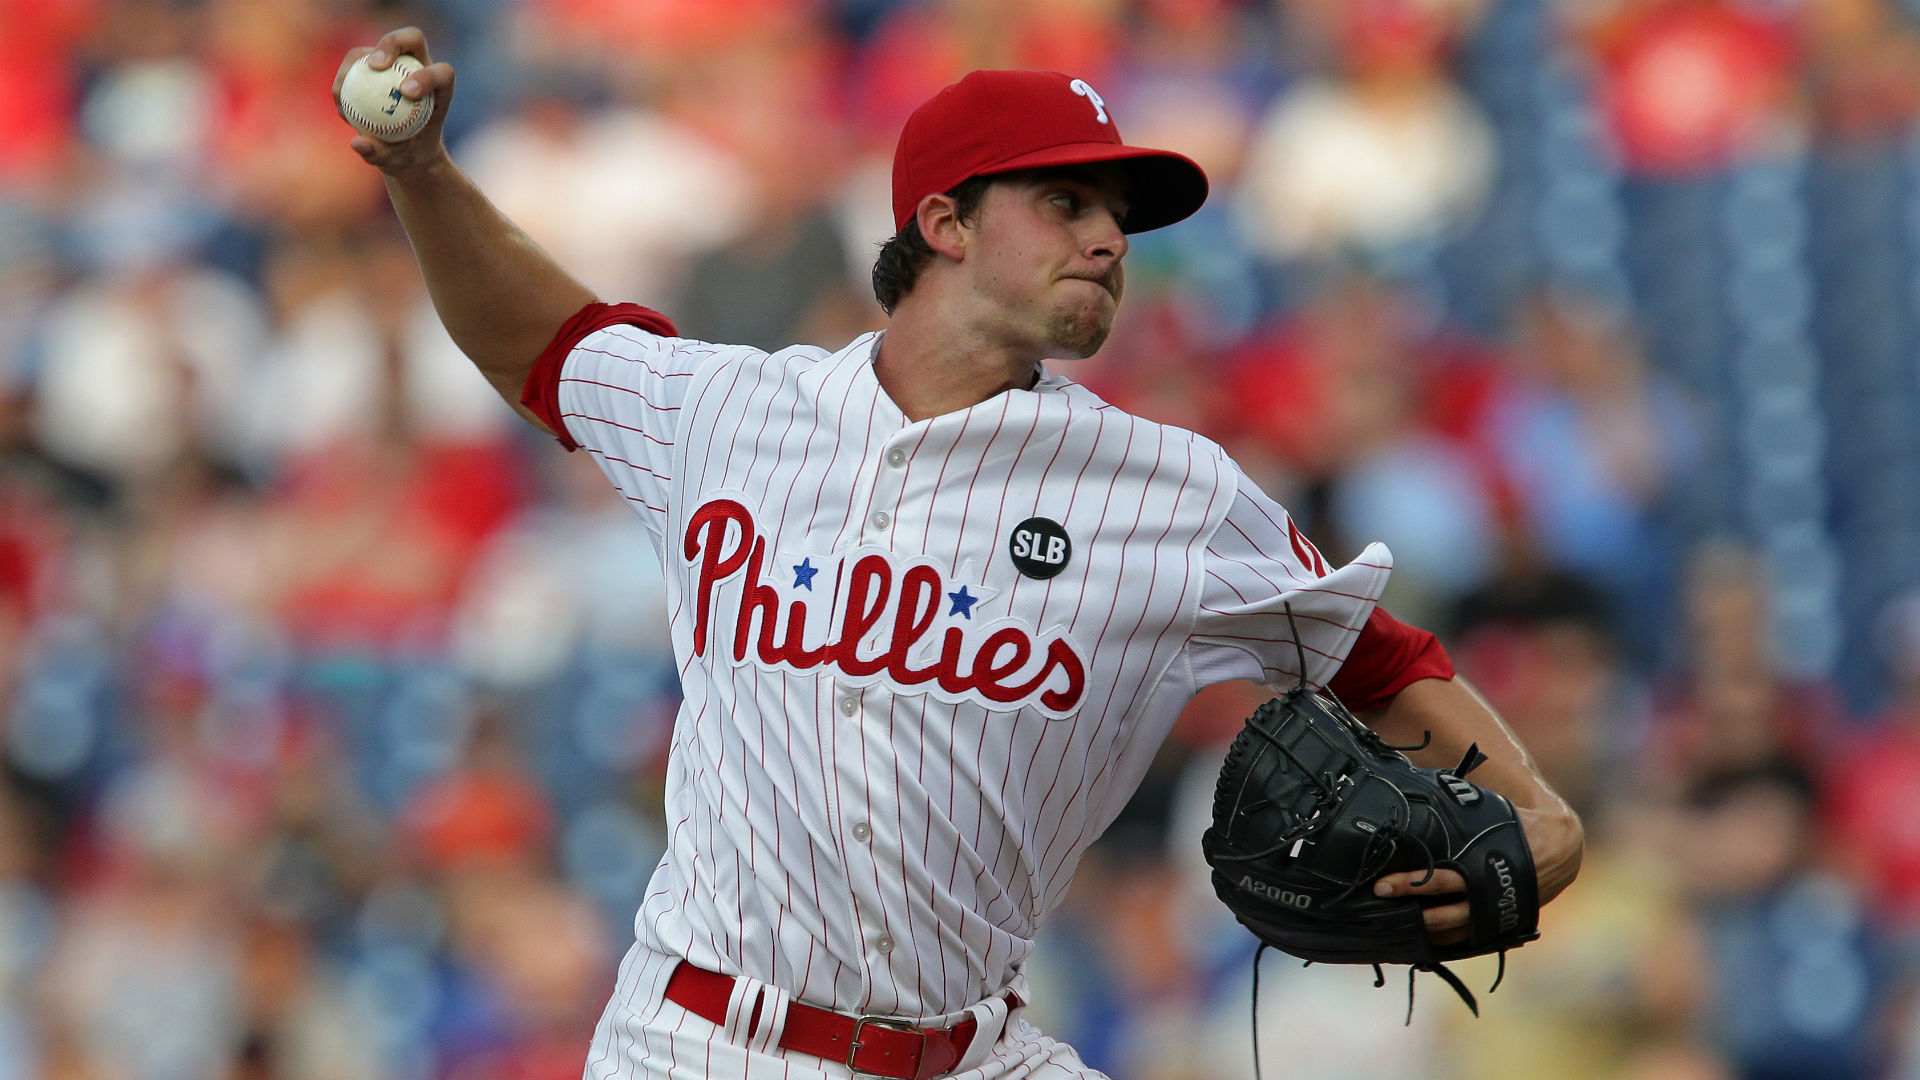 Aaron-Nola-072415-GETTY-FTR